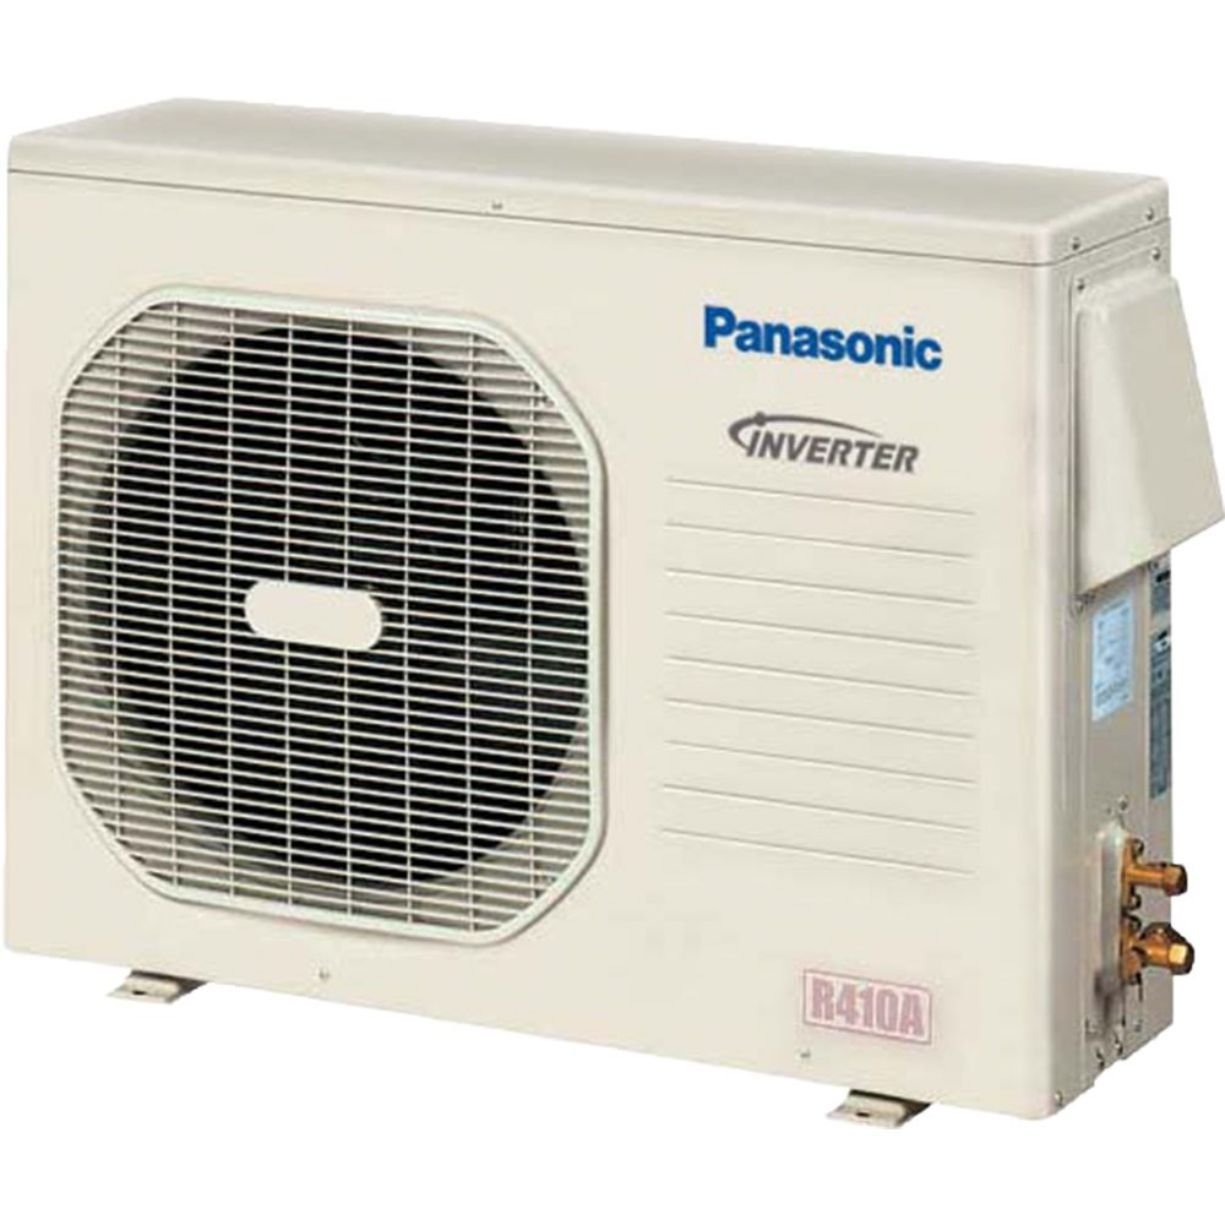 980566 likewise 390554204912 additionally Wall Mounted Air Conditioner For Apartment further Heating And Air Conditioning Units moreover Mens Wedding Rings At Walmart. on mini heat ac combo units